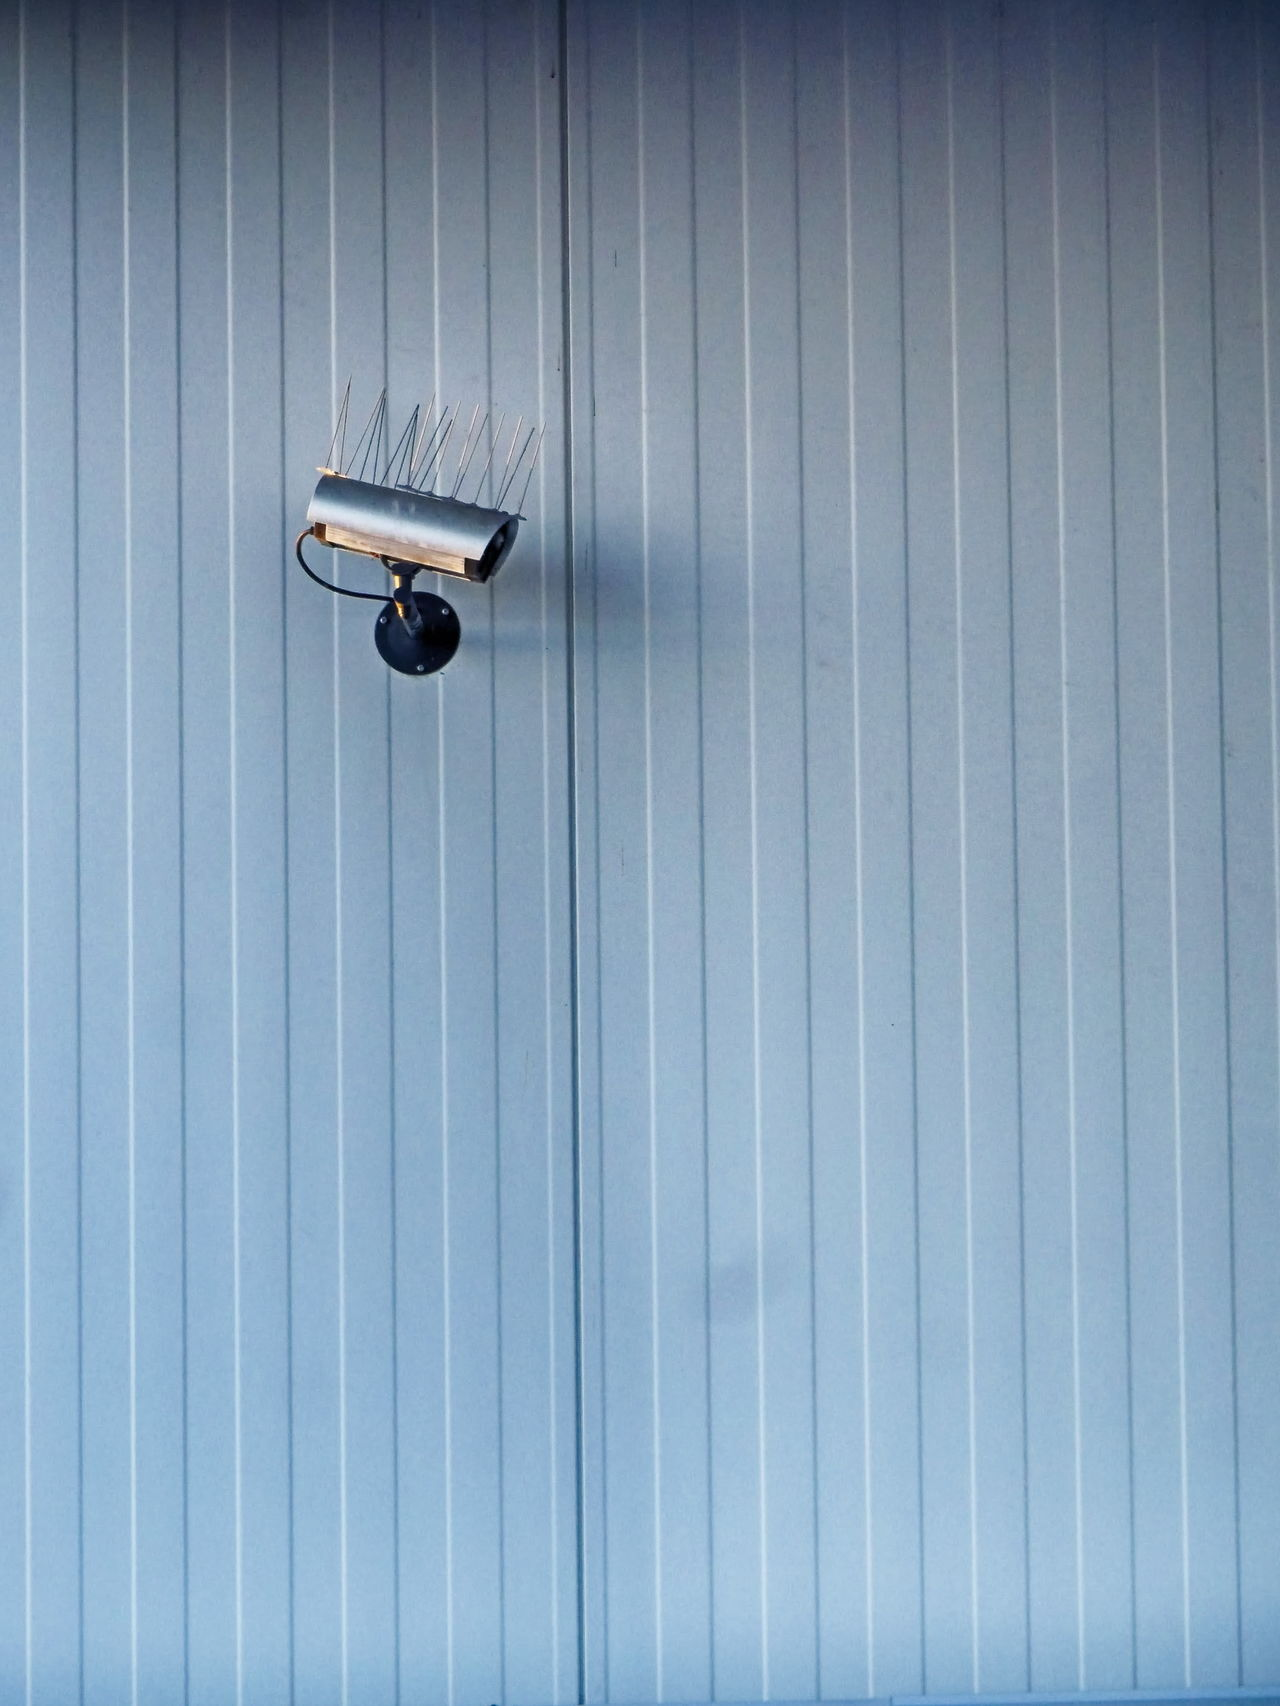 Backgrounds Business Camera Control Geometry Hanging Pattern Protecting Where We Play Security Securitycam Simplicity Spying Surveillance Textured  Wall - Building Feature